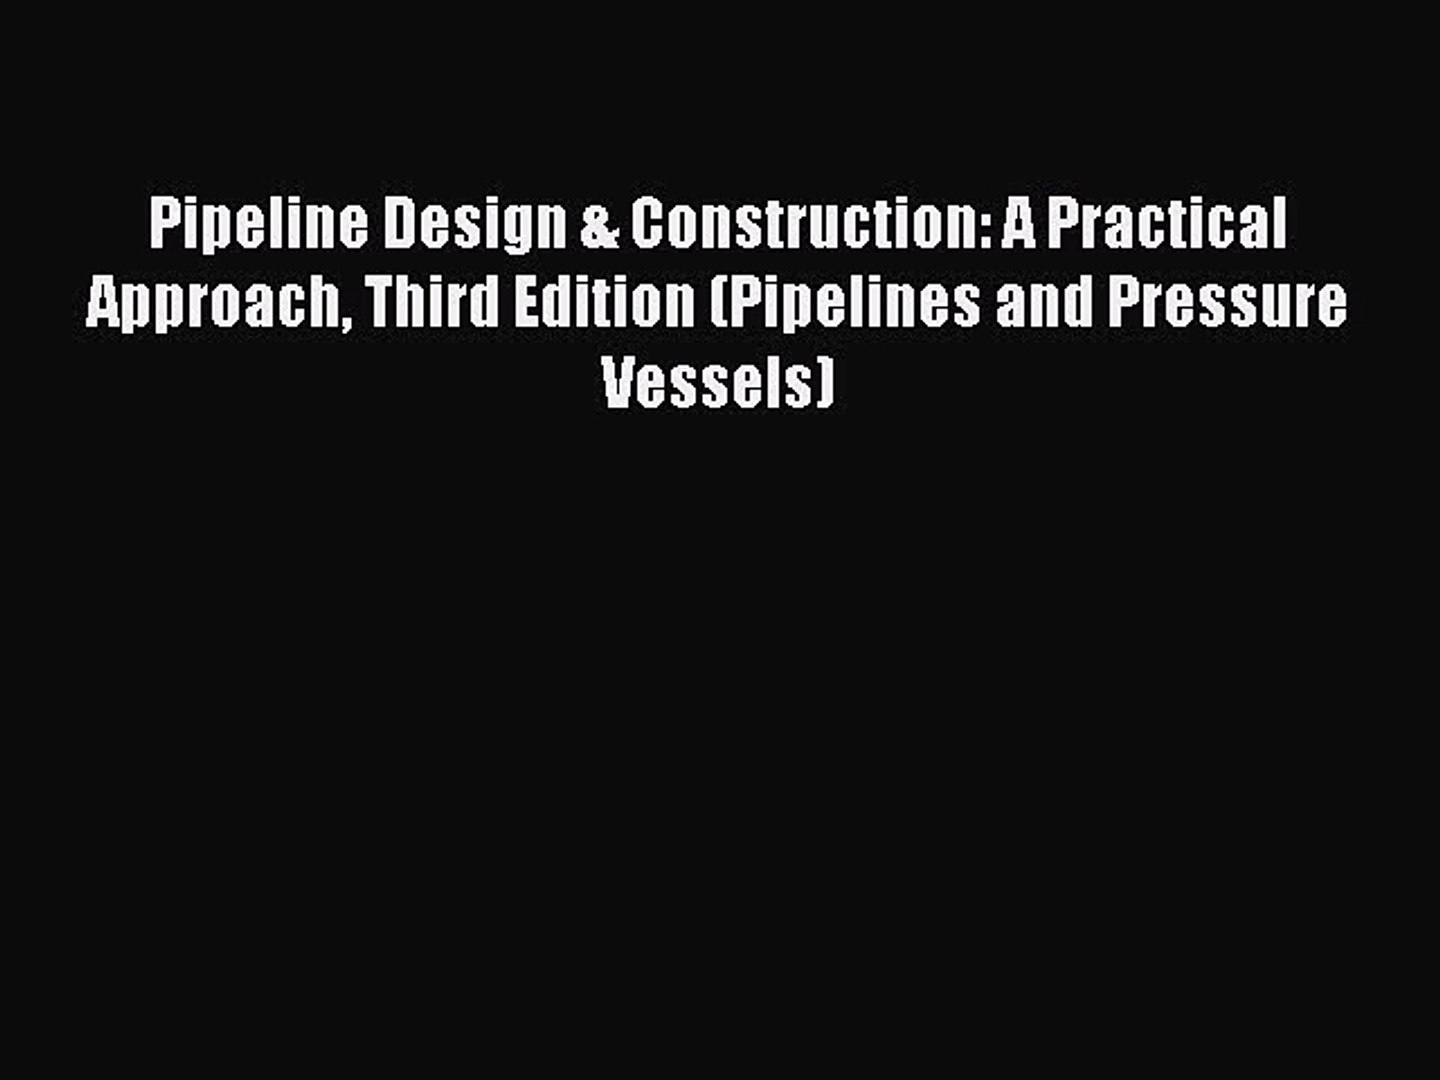 [Read Book] Pipeline Design & Construction: A Practical Approach Third Edition (Pipelines and